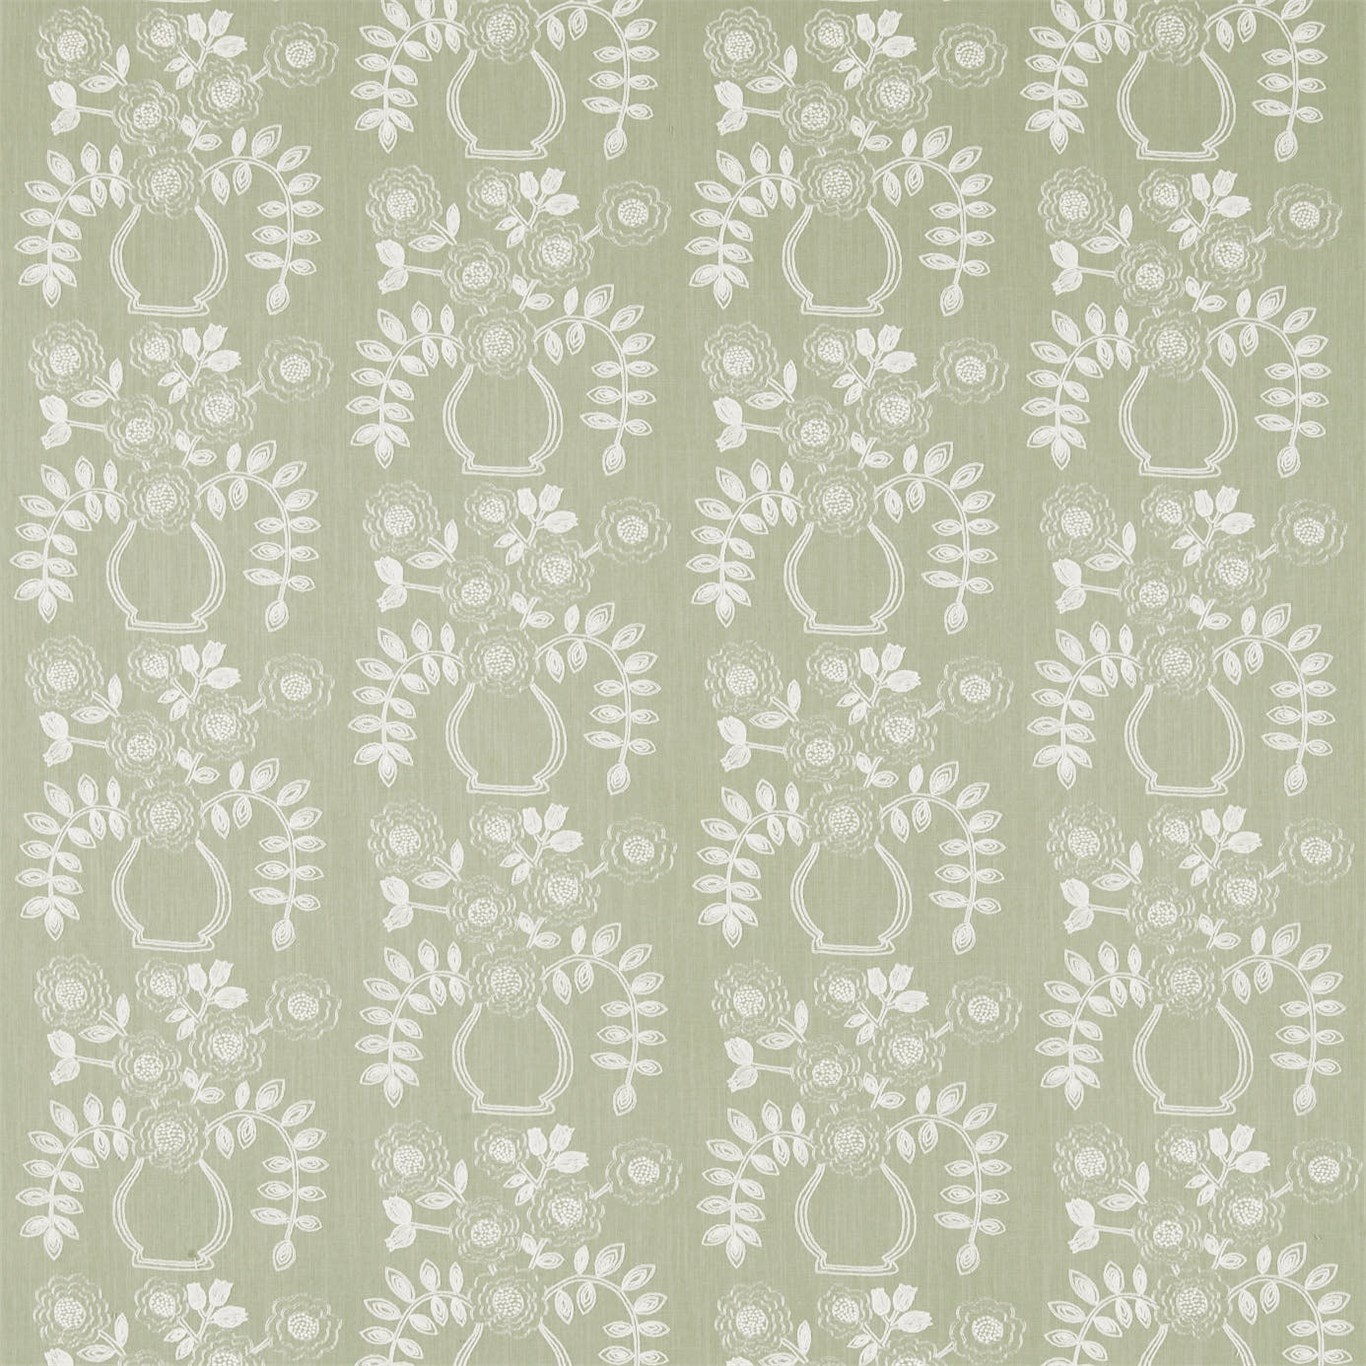 Image of Sanderson Home Flower Pot Fennel Curtain Fabric 235880